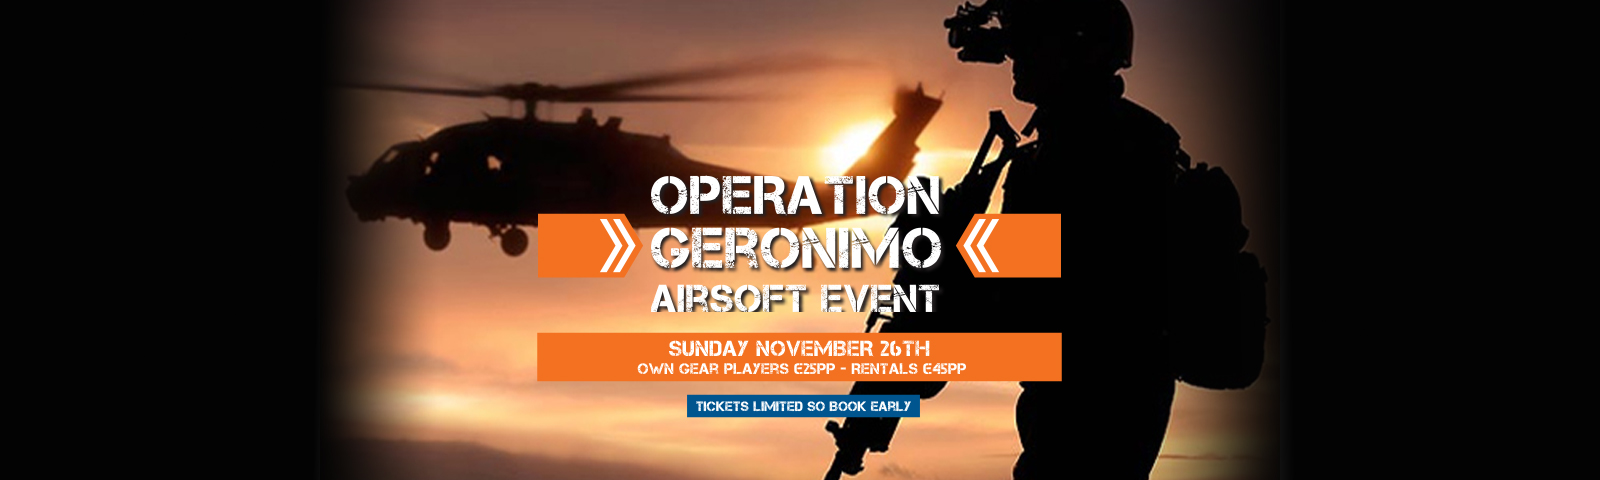 Nov-Web-Event-airsoft_slider